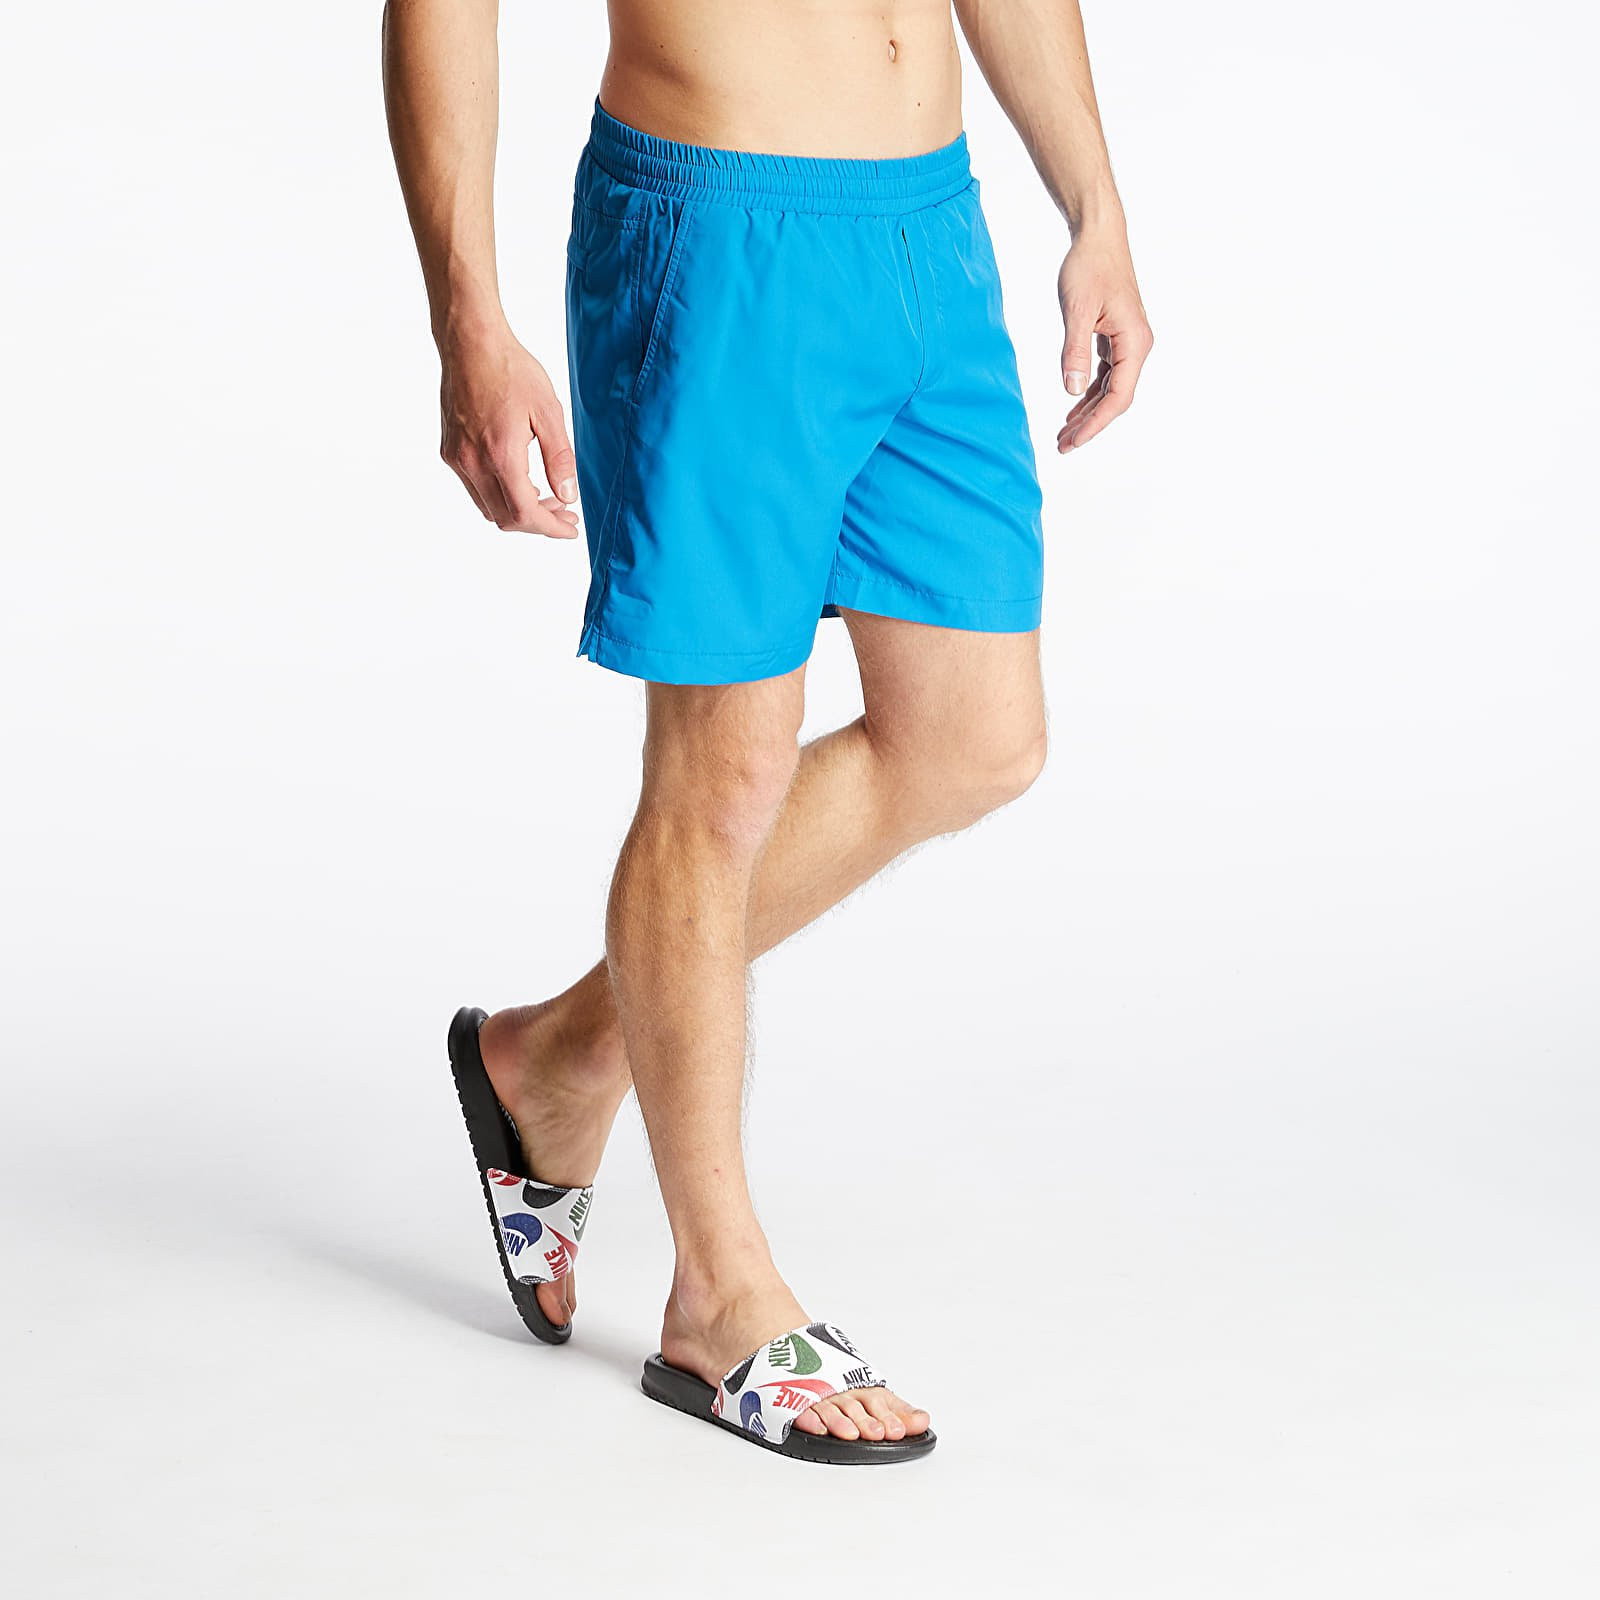 Shorts WOOD WOOD Roy Swim Shorts Bright Blue